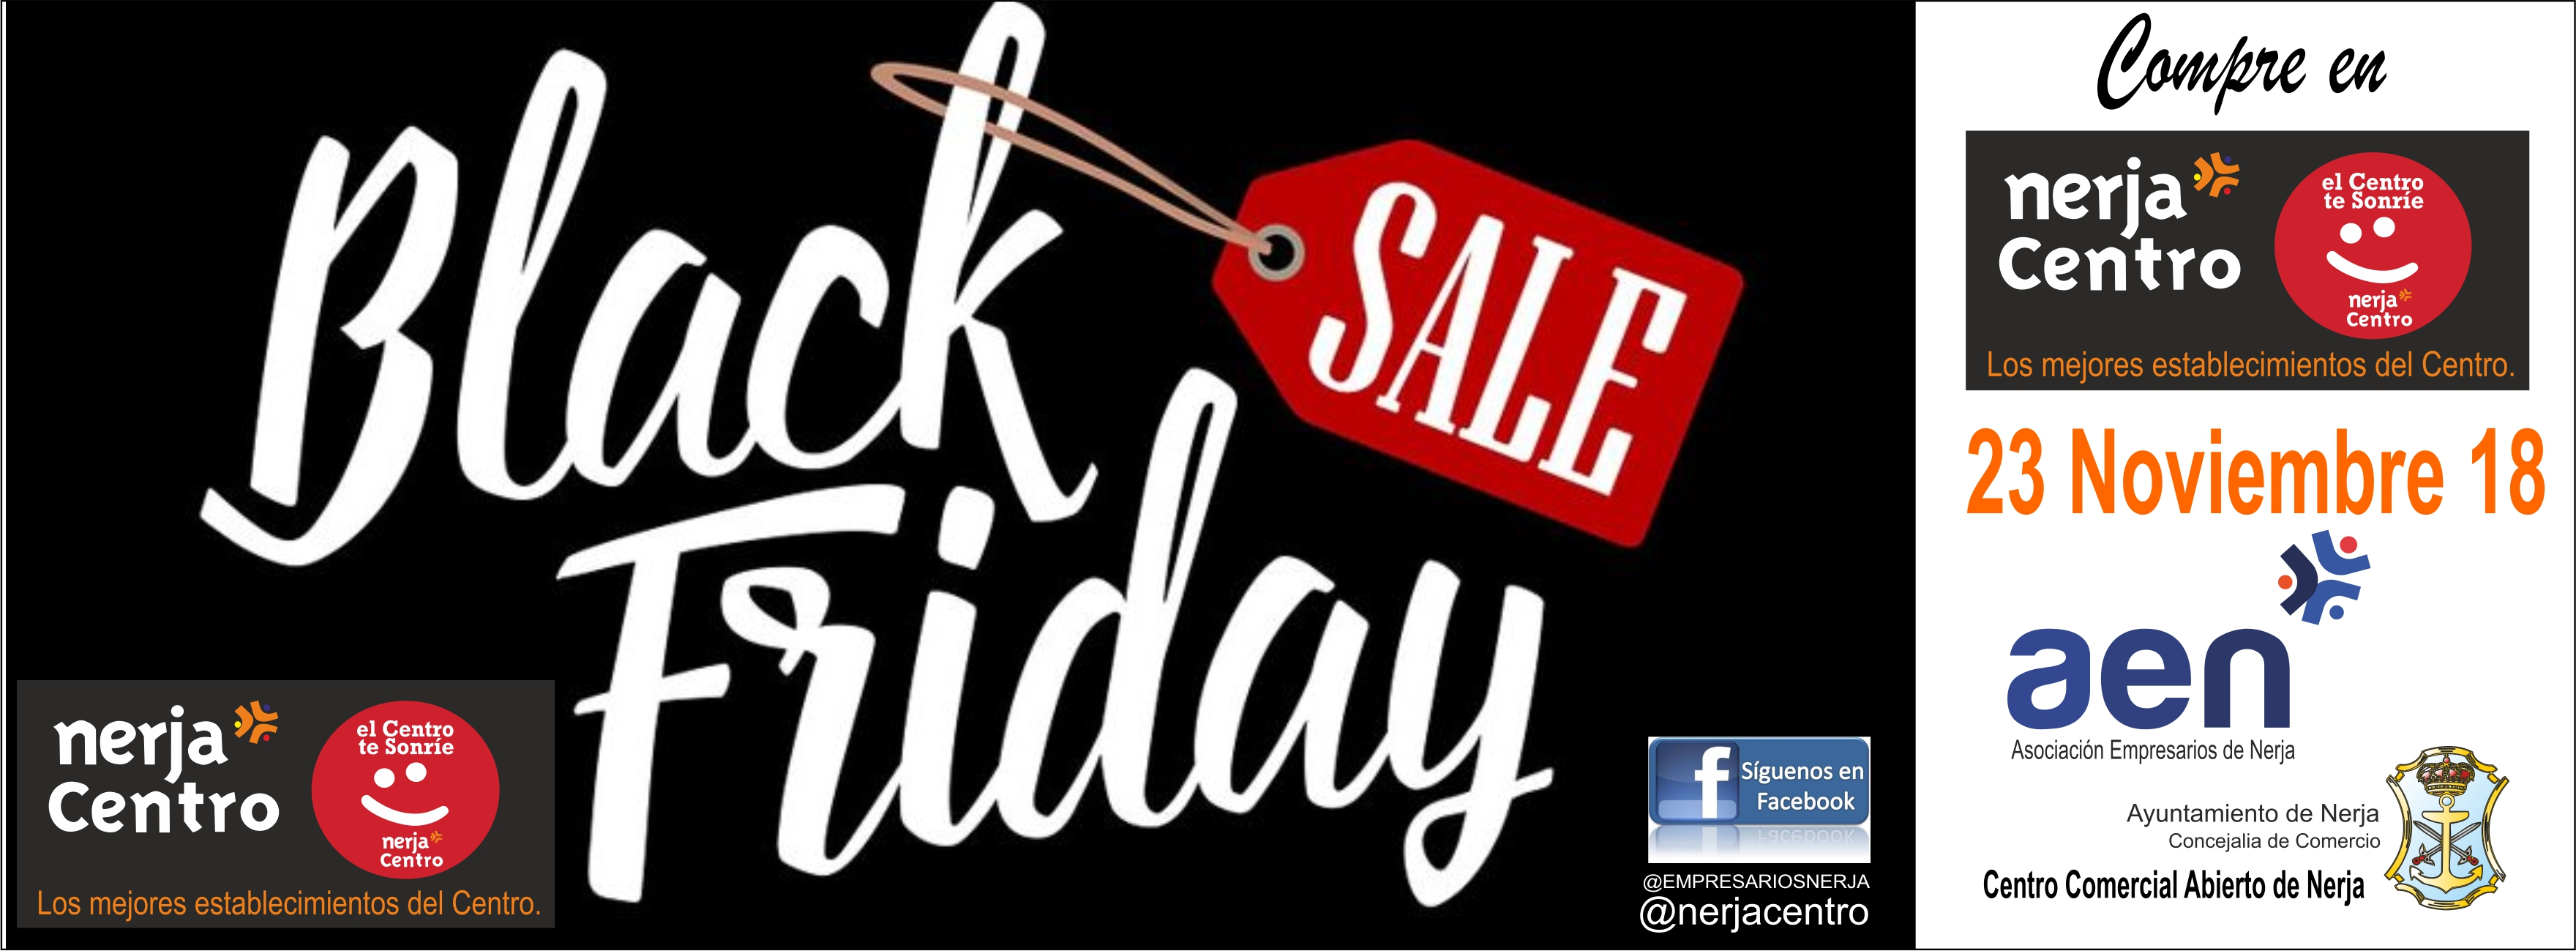 BLACK FRIDAY 18 NERJA